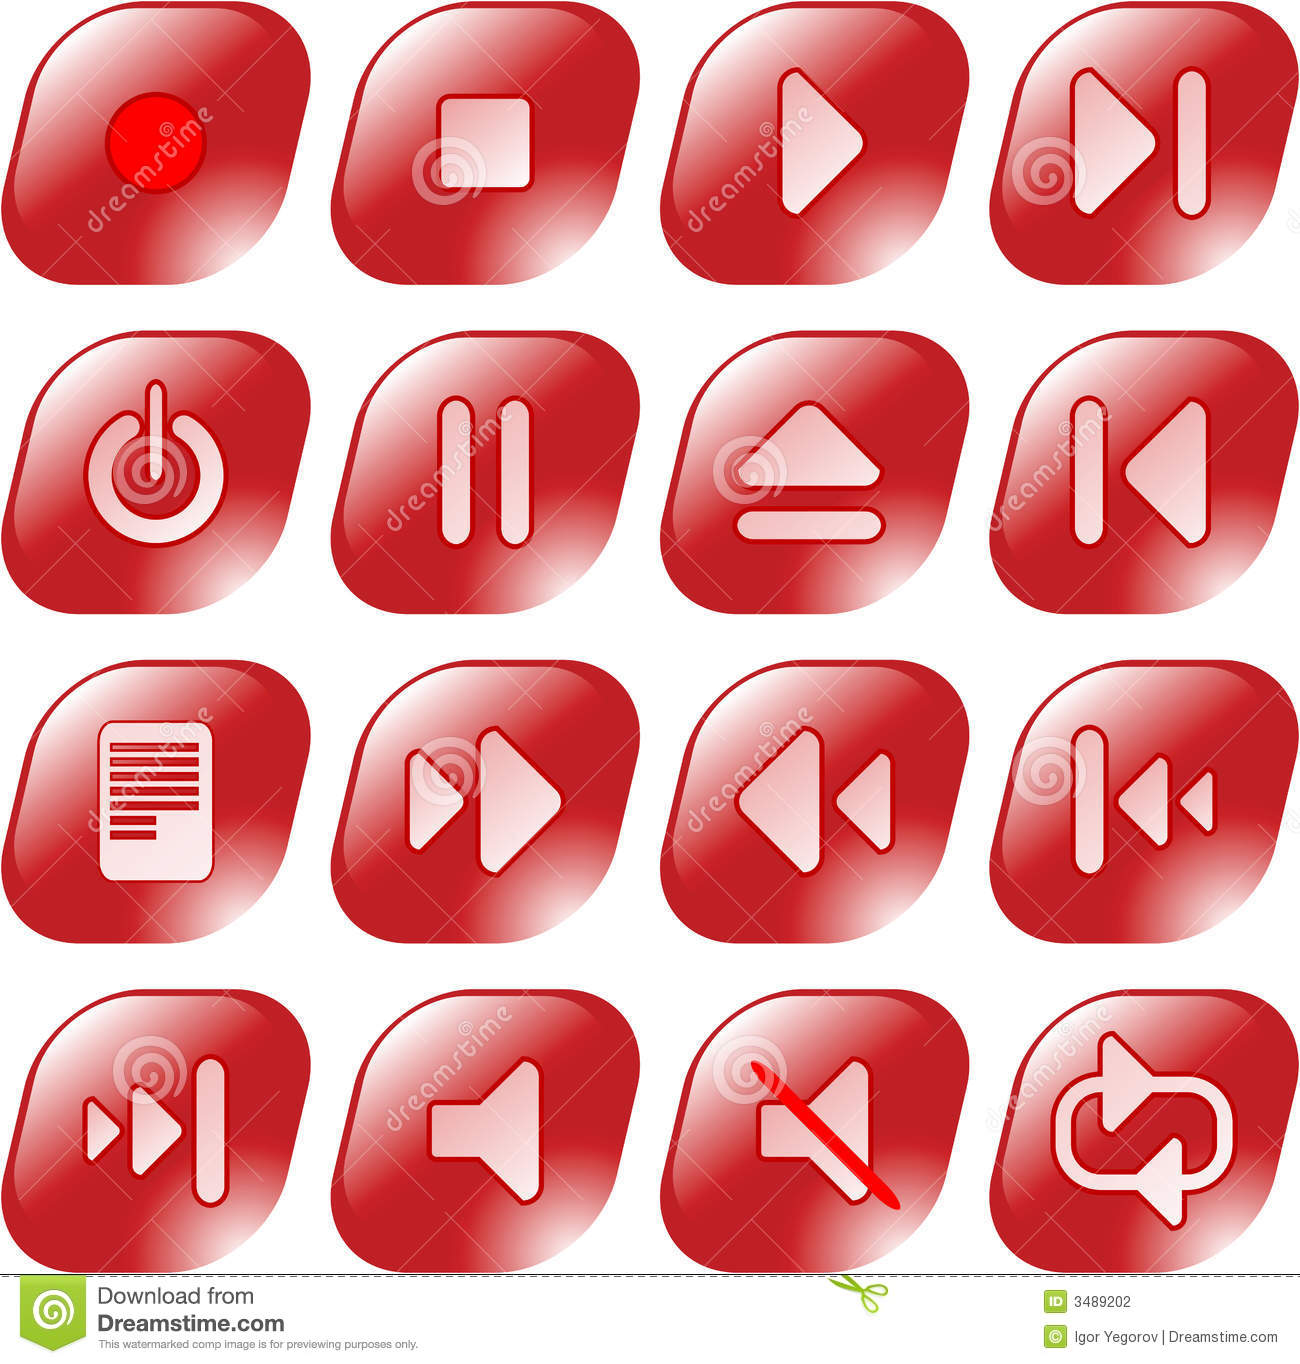 Media player icons stock vector. Illustration of plastic - 3489202